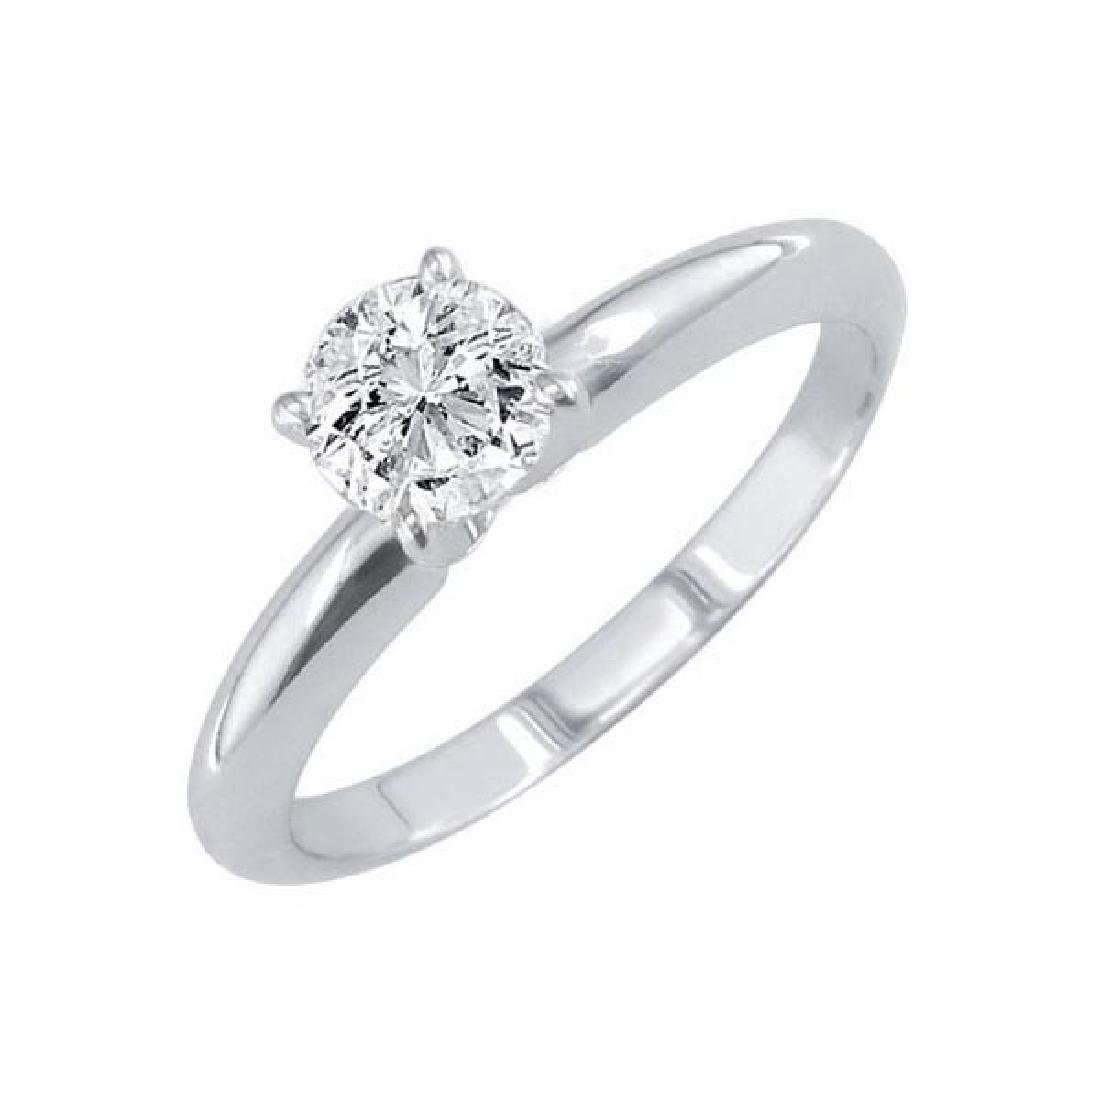 Certified 0.56 CTW Round Diamond Solitaire 14k Ring H/S